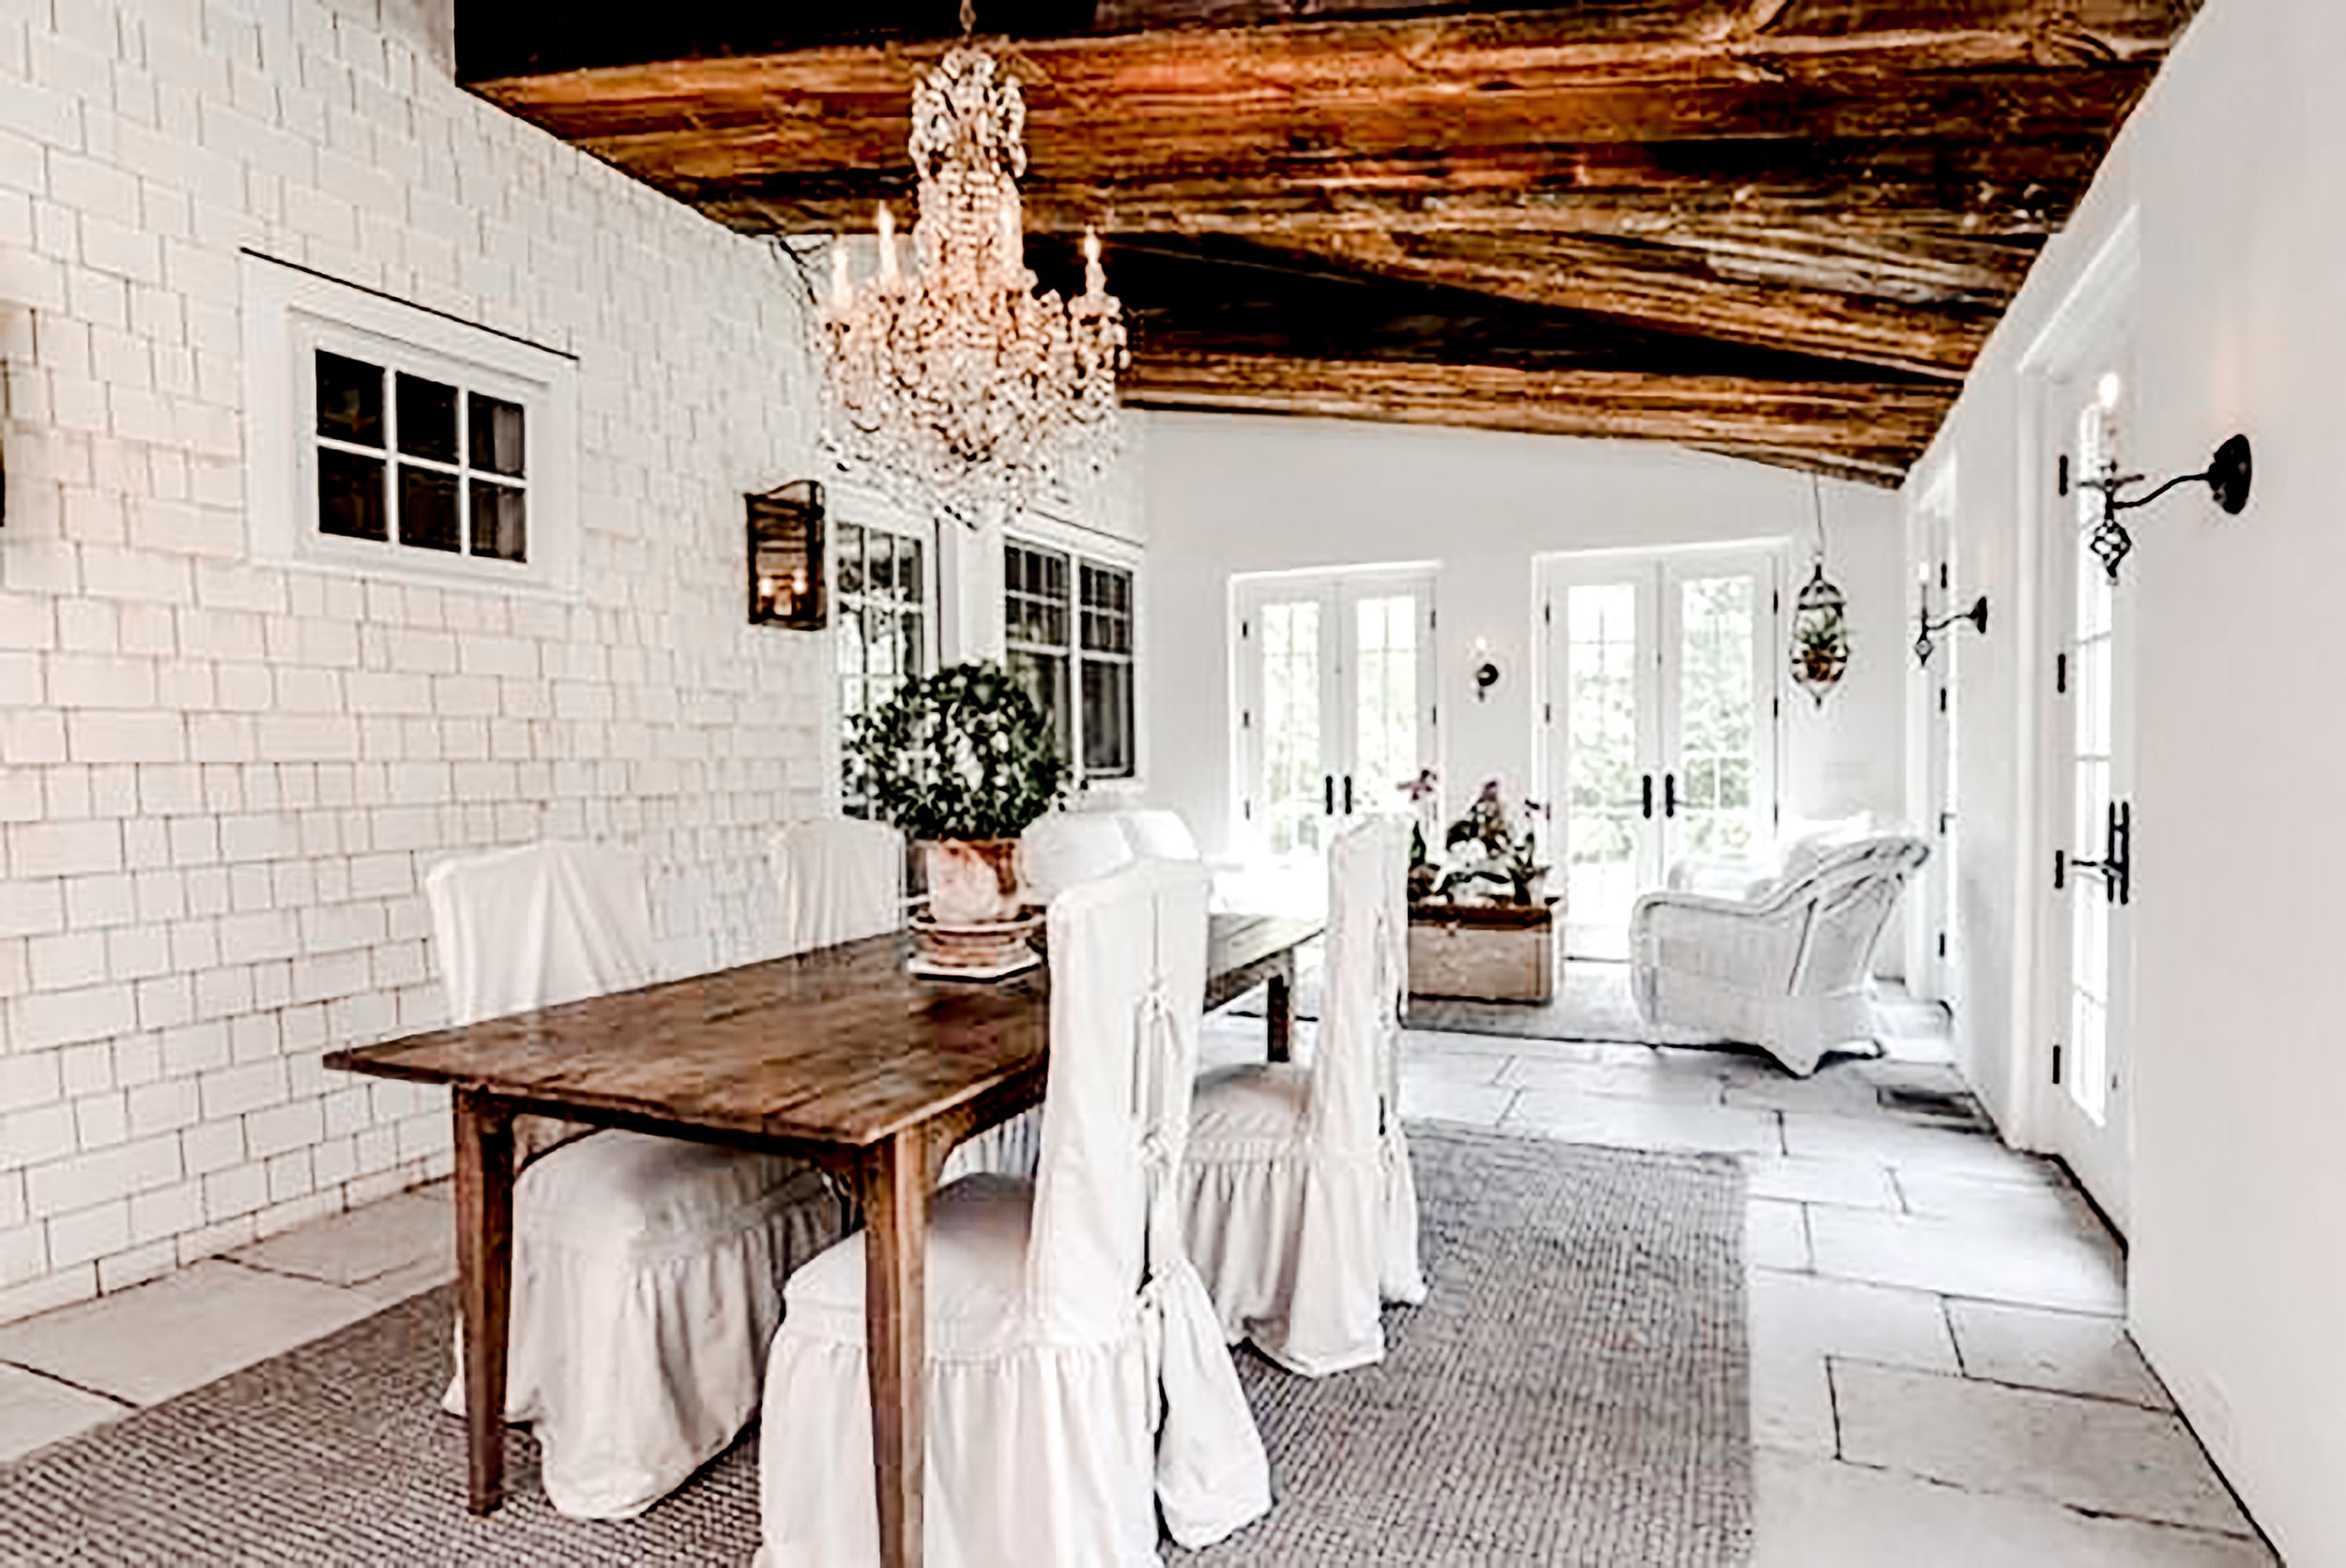 Luxe_and_Livable_Interior_Design_Blog_by_Maloney_Interiors_Newport_Rhode_Island_Gustave_White_Sotheby_Real_Estate_7.jpg